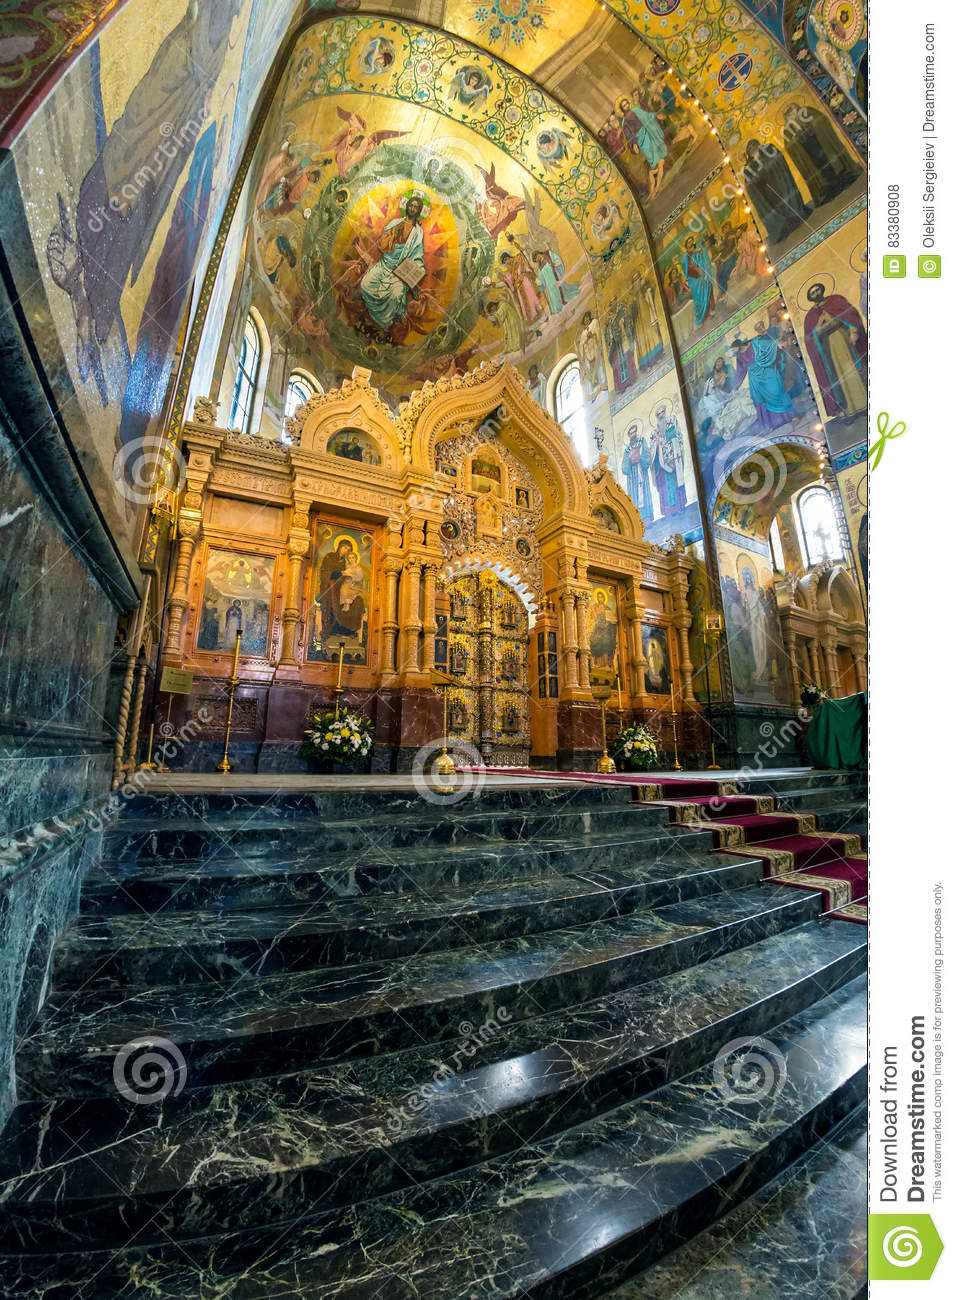 Church of the Savior on Spilled Blood. Central icon case or kio